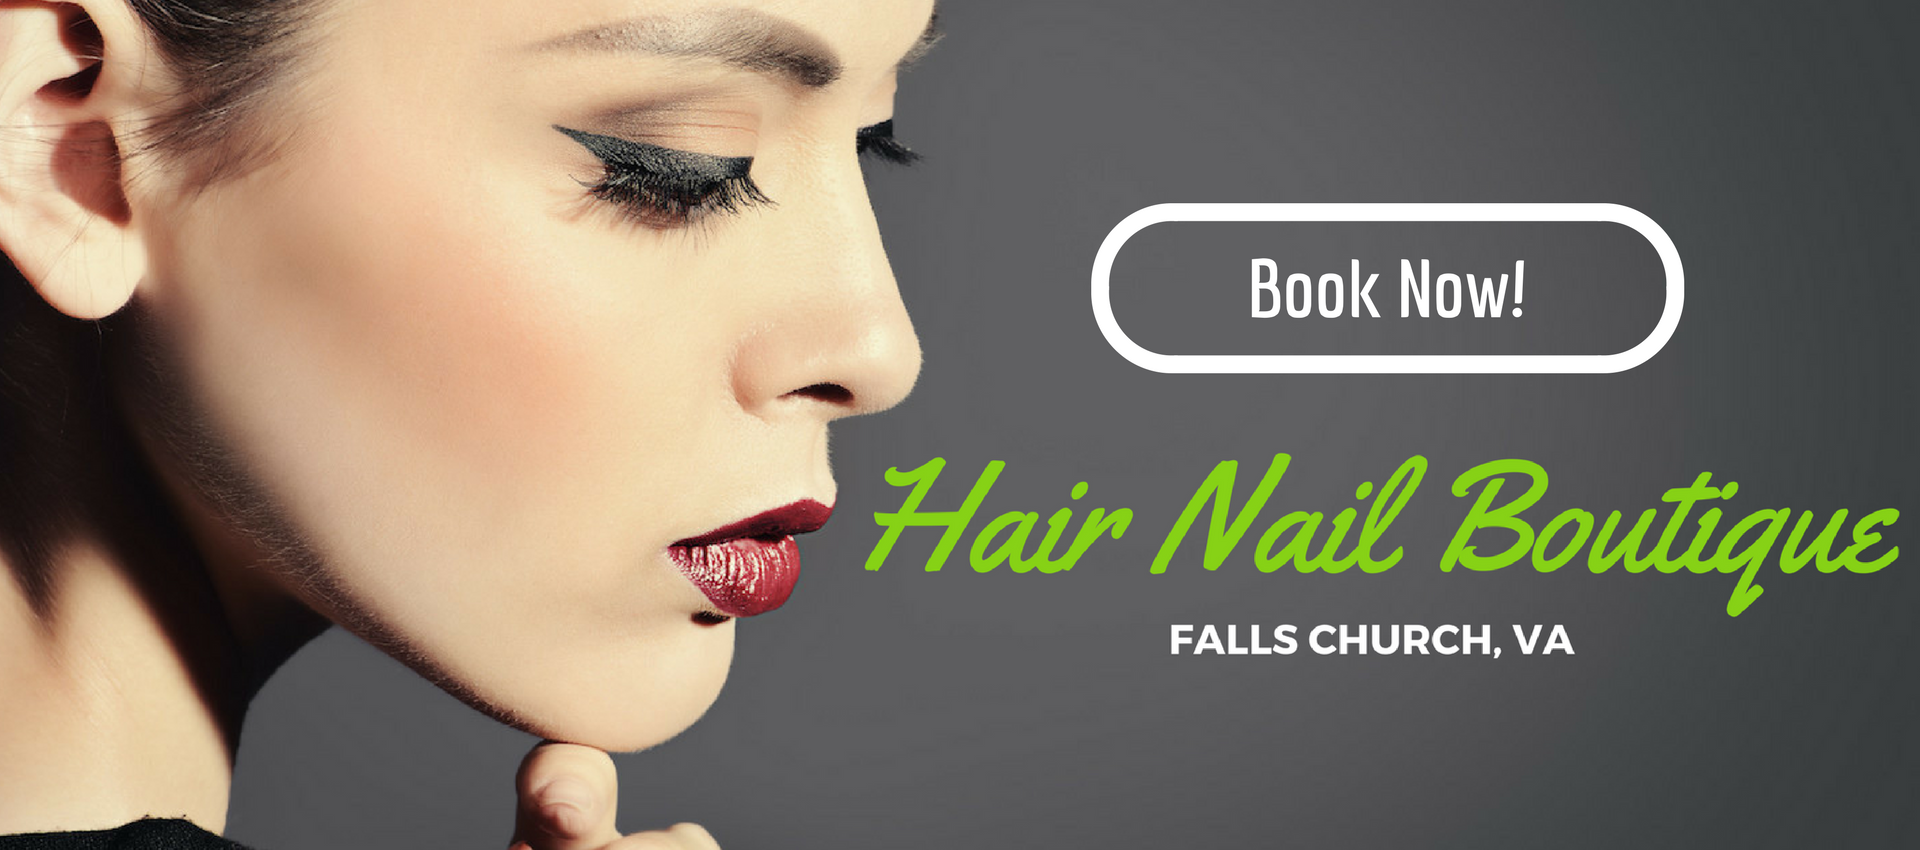 hair nail boutique online booking